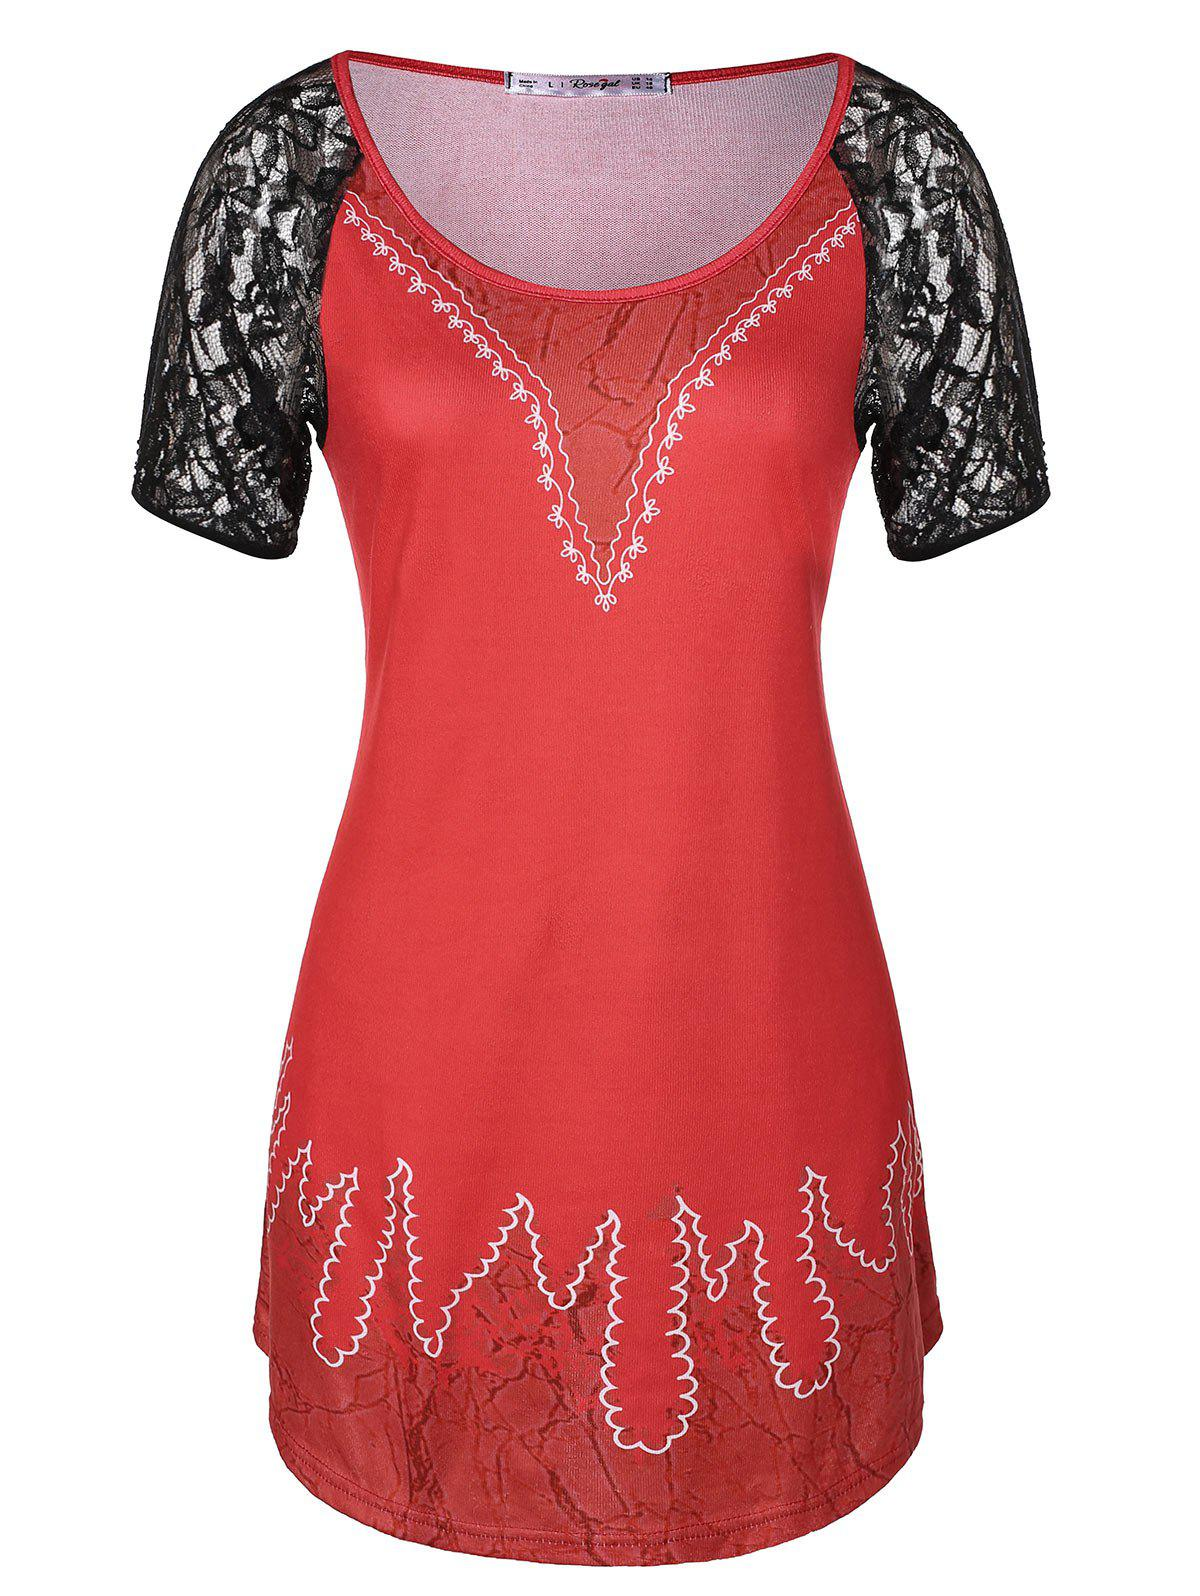 Lace Insert Tunic Plus Size T-shirt